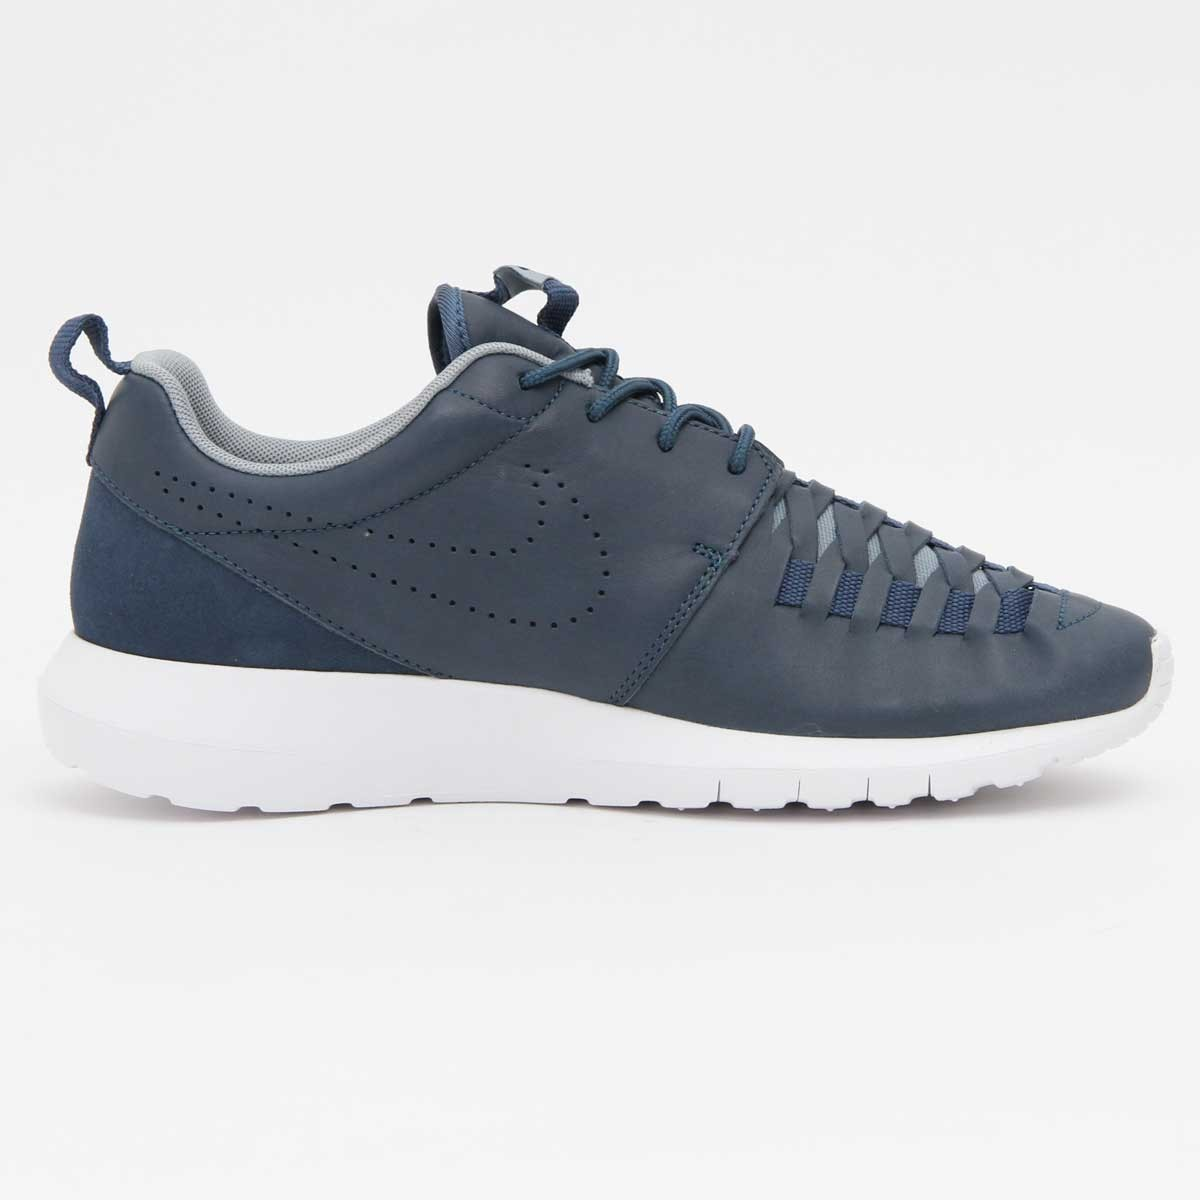 Nike Roshe Run NM Woven Cuir Chaussures Pour Homme Nouvelle Ardoise/Obsidienne Noire 725168-400